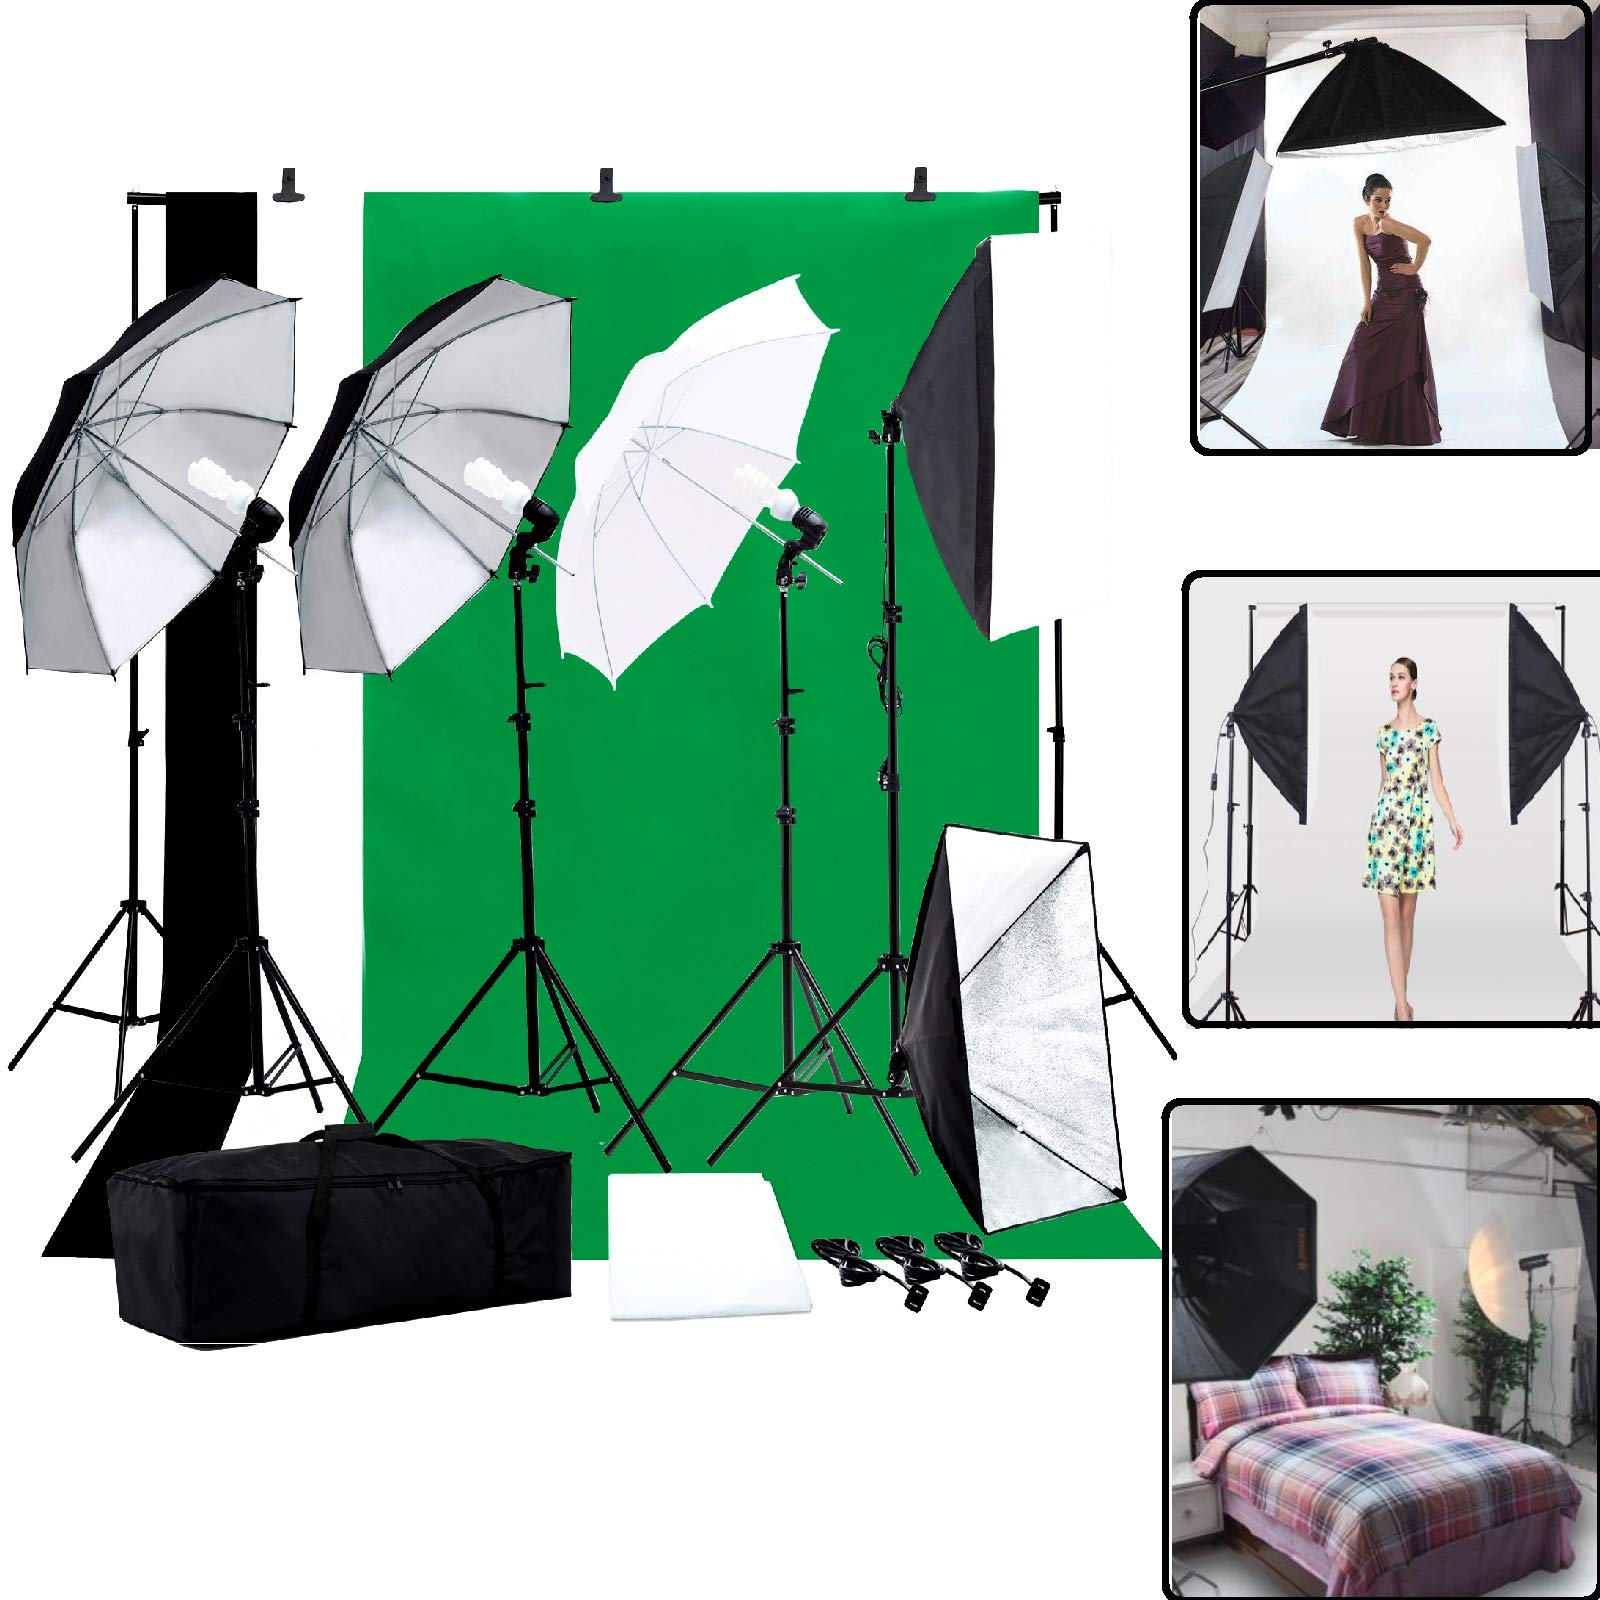 Photo Studio Photography Kit -Nurxiovo 6.6ft x 10ft Photography Lighting Studio Set Soft Umbrella Soft Boxes Studio Light Adjustable Support System Green Screen Backdrop Stand with Portable Carry Bag by Nurxiovo